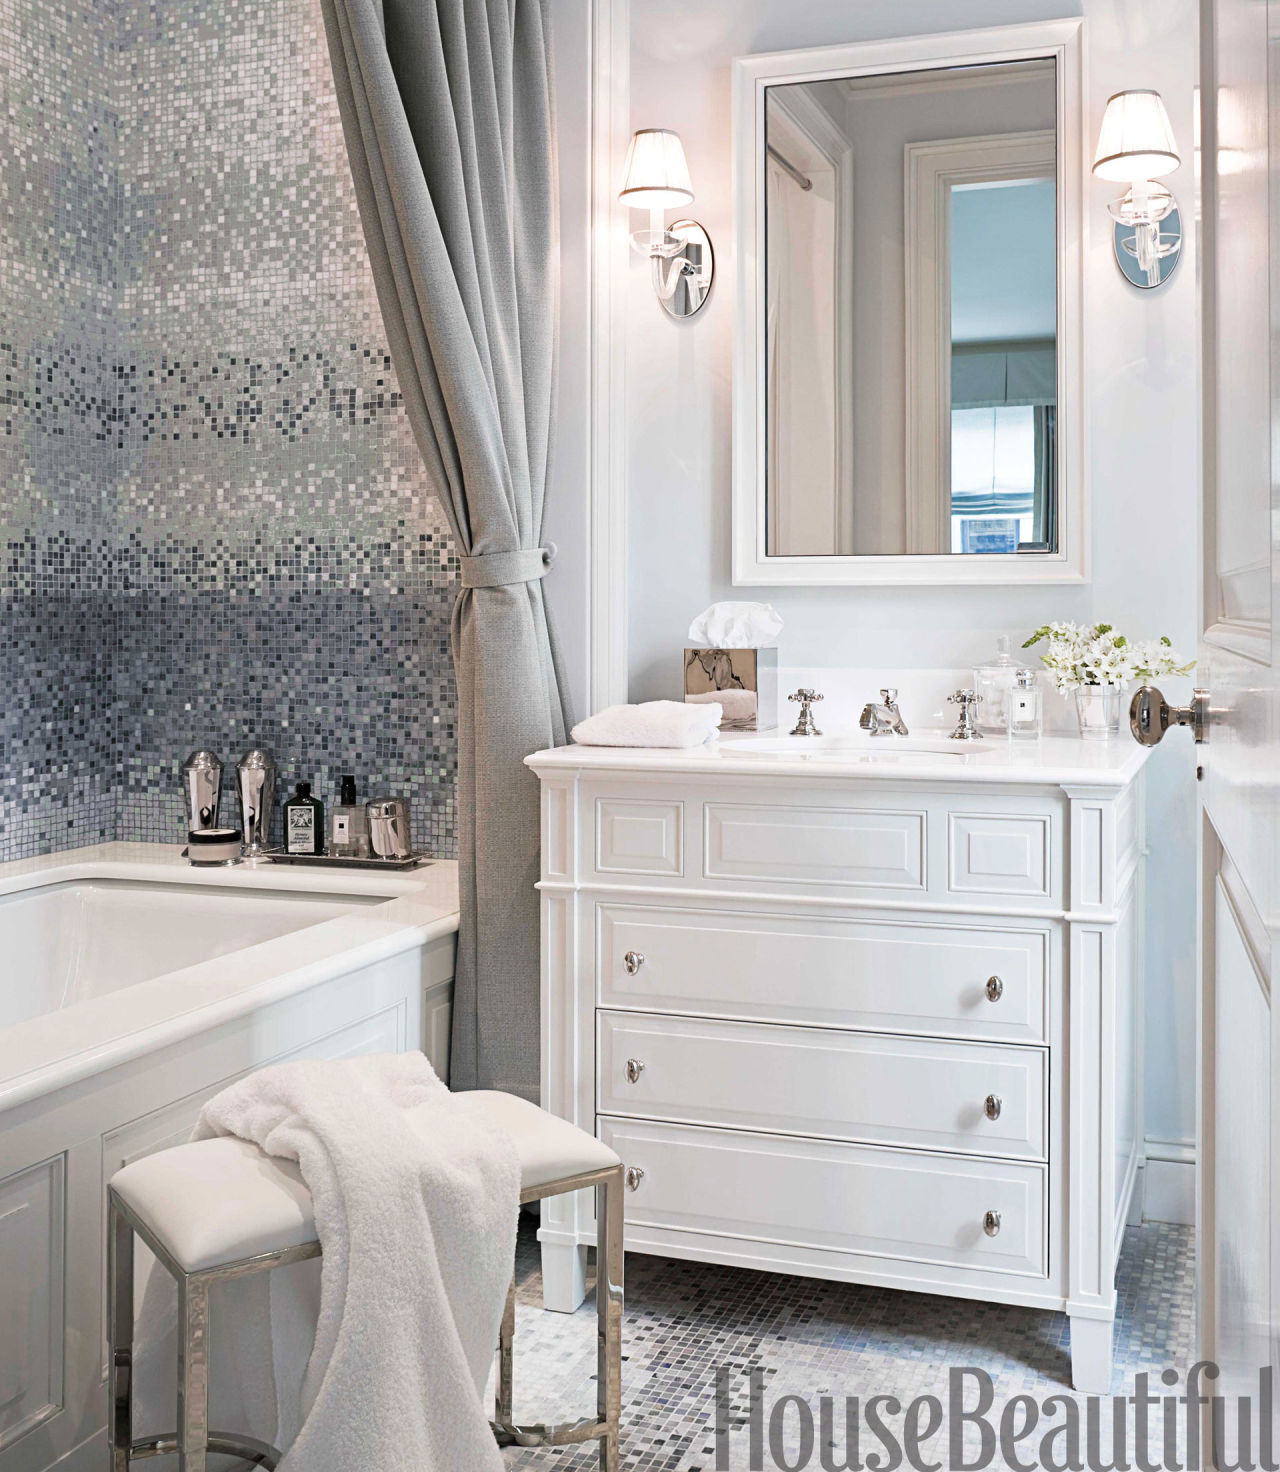 Mosaic bathroom design his and hers bathroom decor for His hers bathroom decor